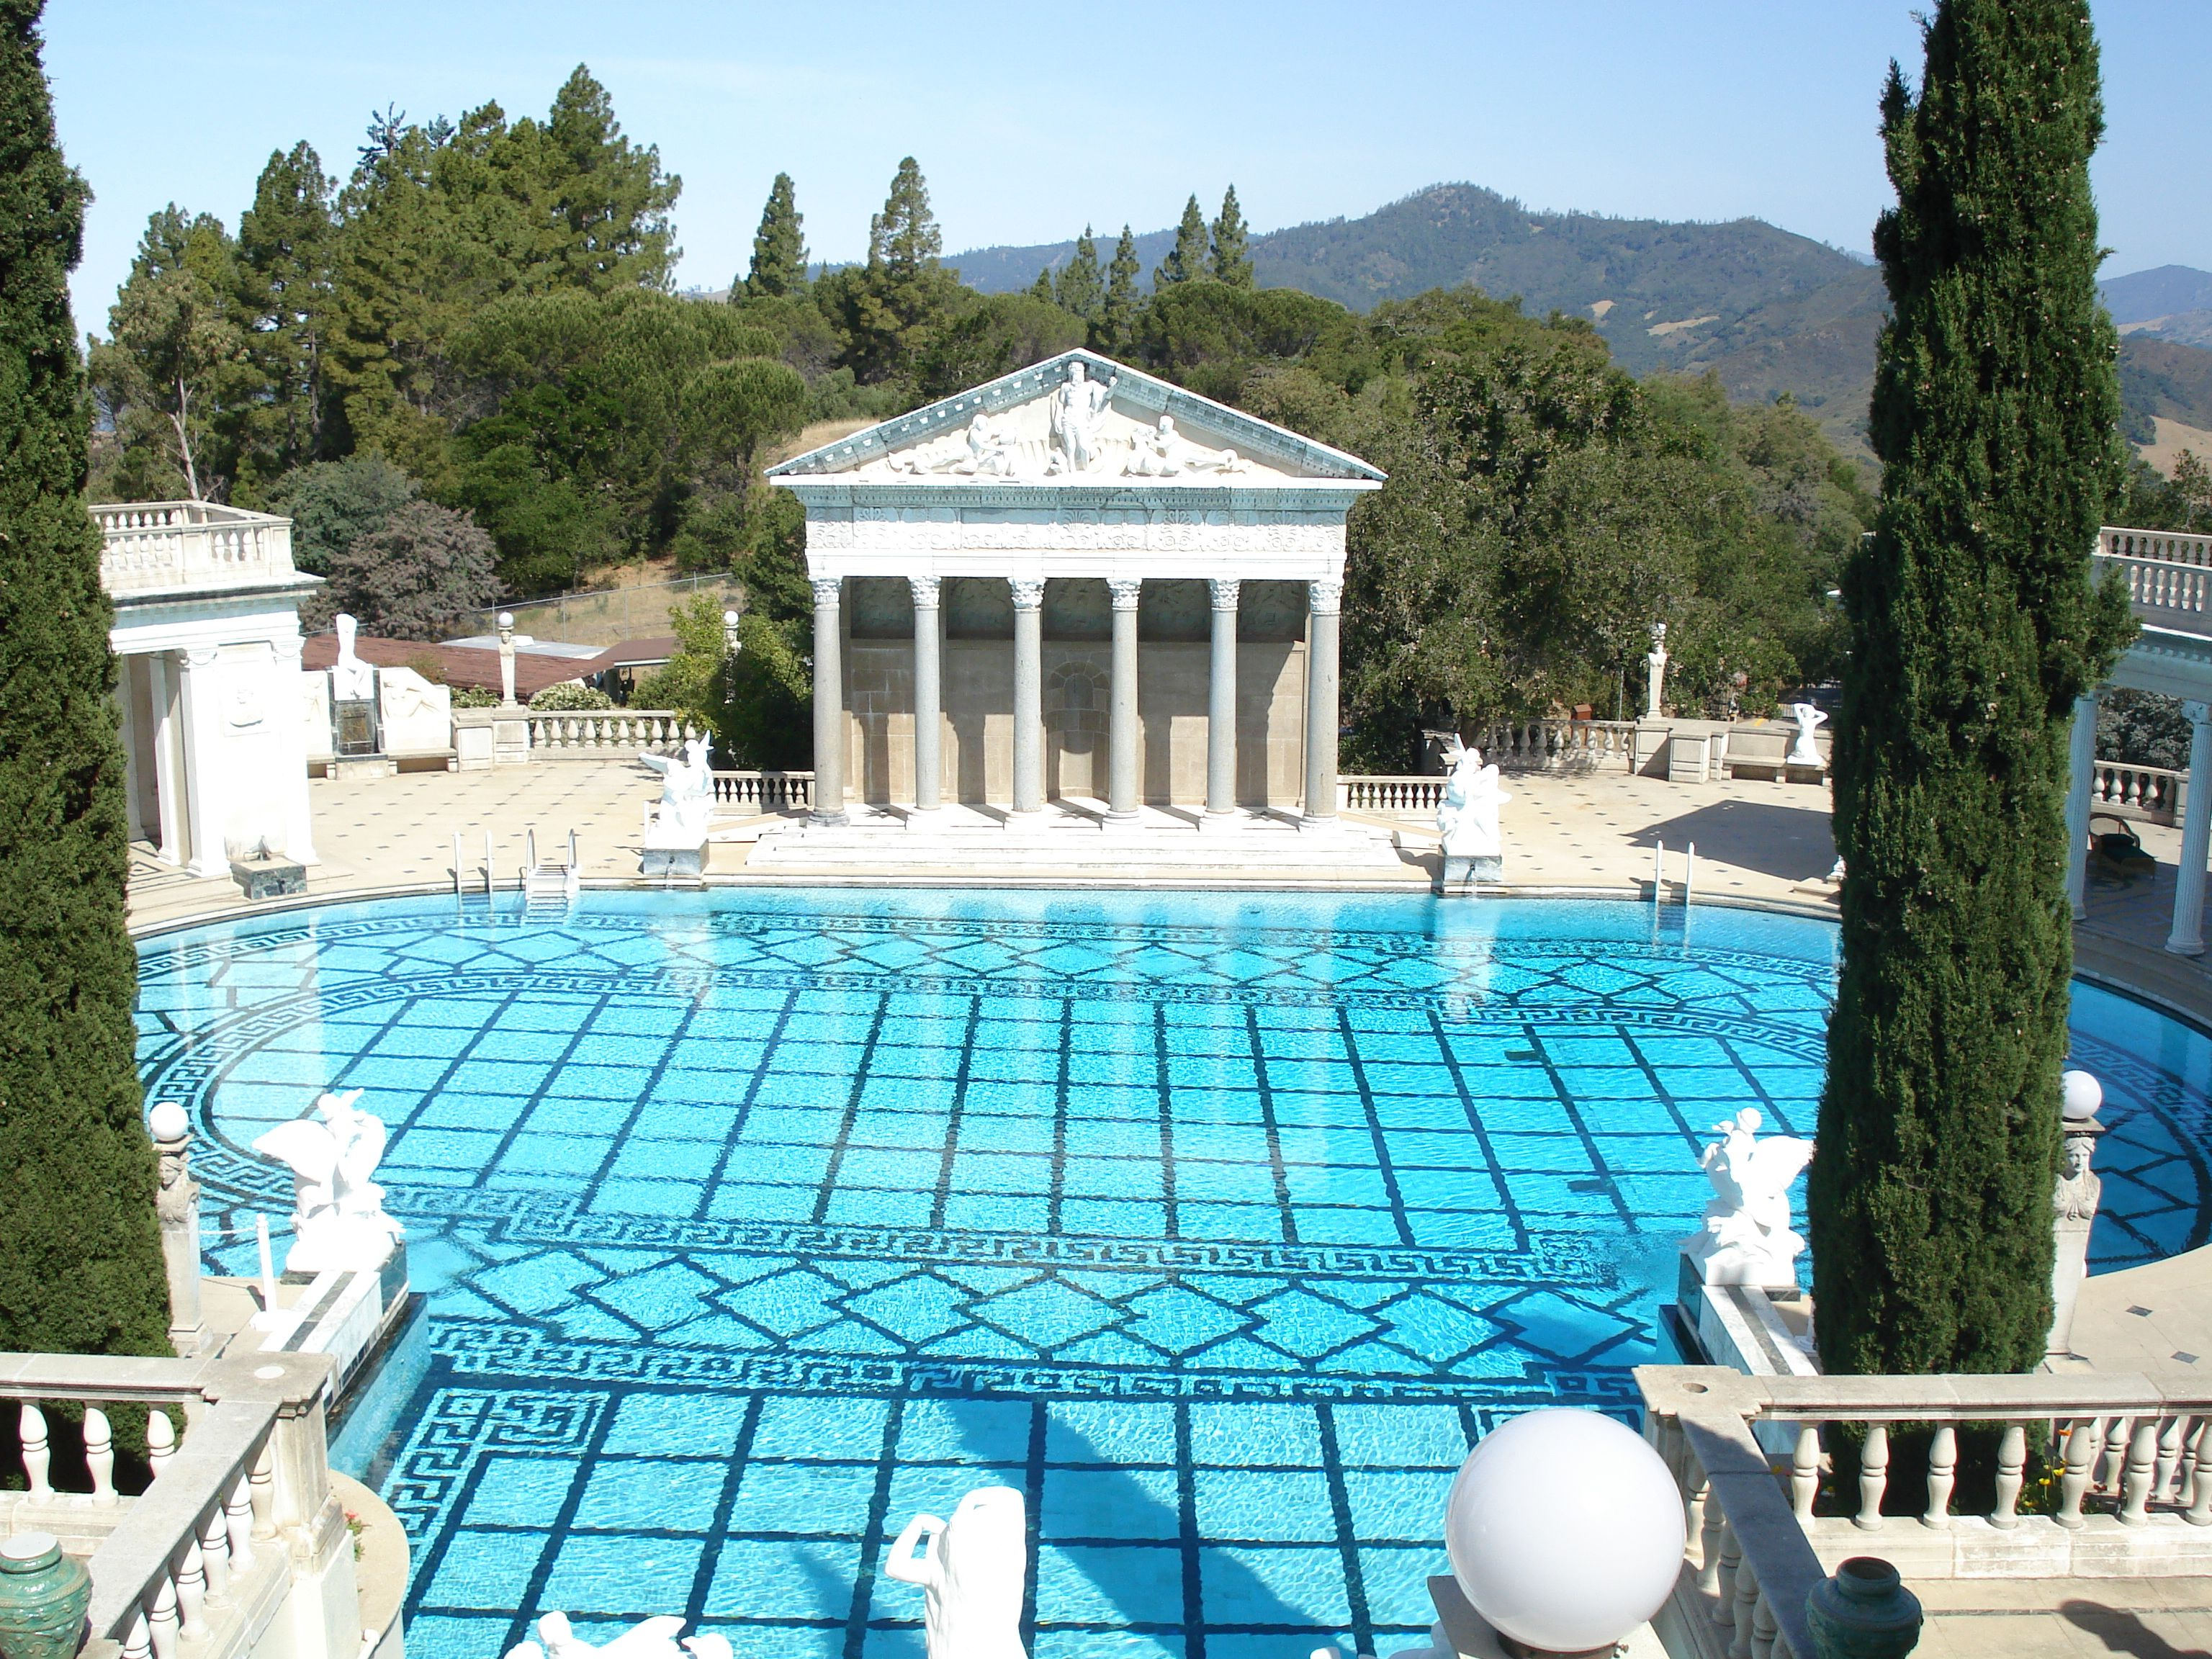 Hearst castle neptune pool gorgeous gardens pools and for Castle gardens pool